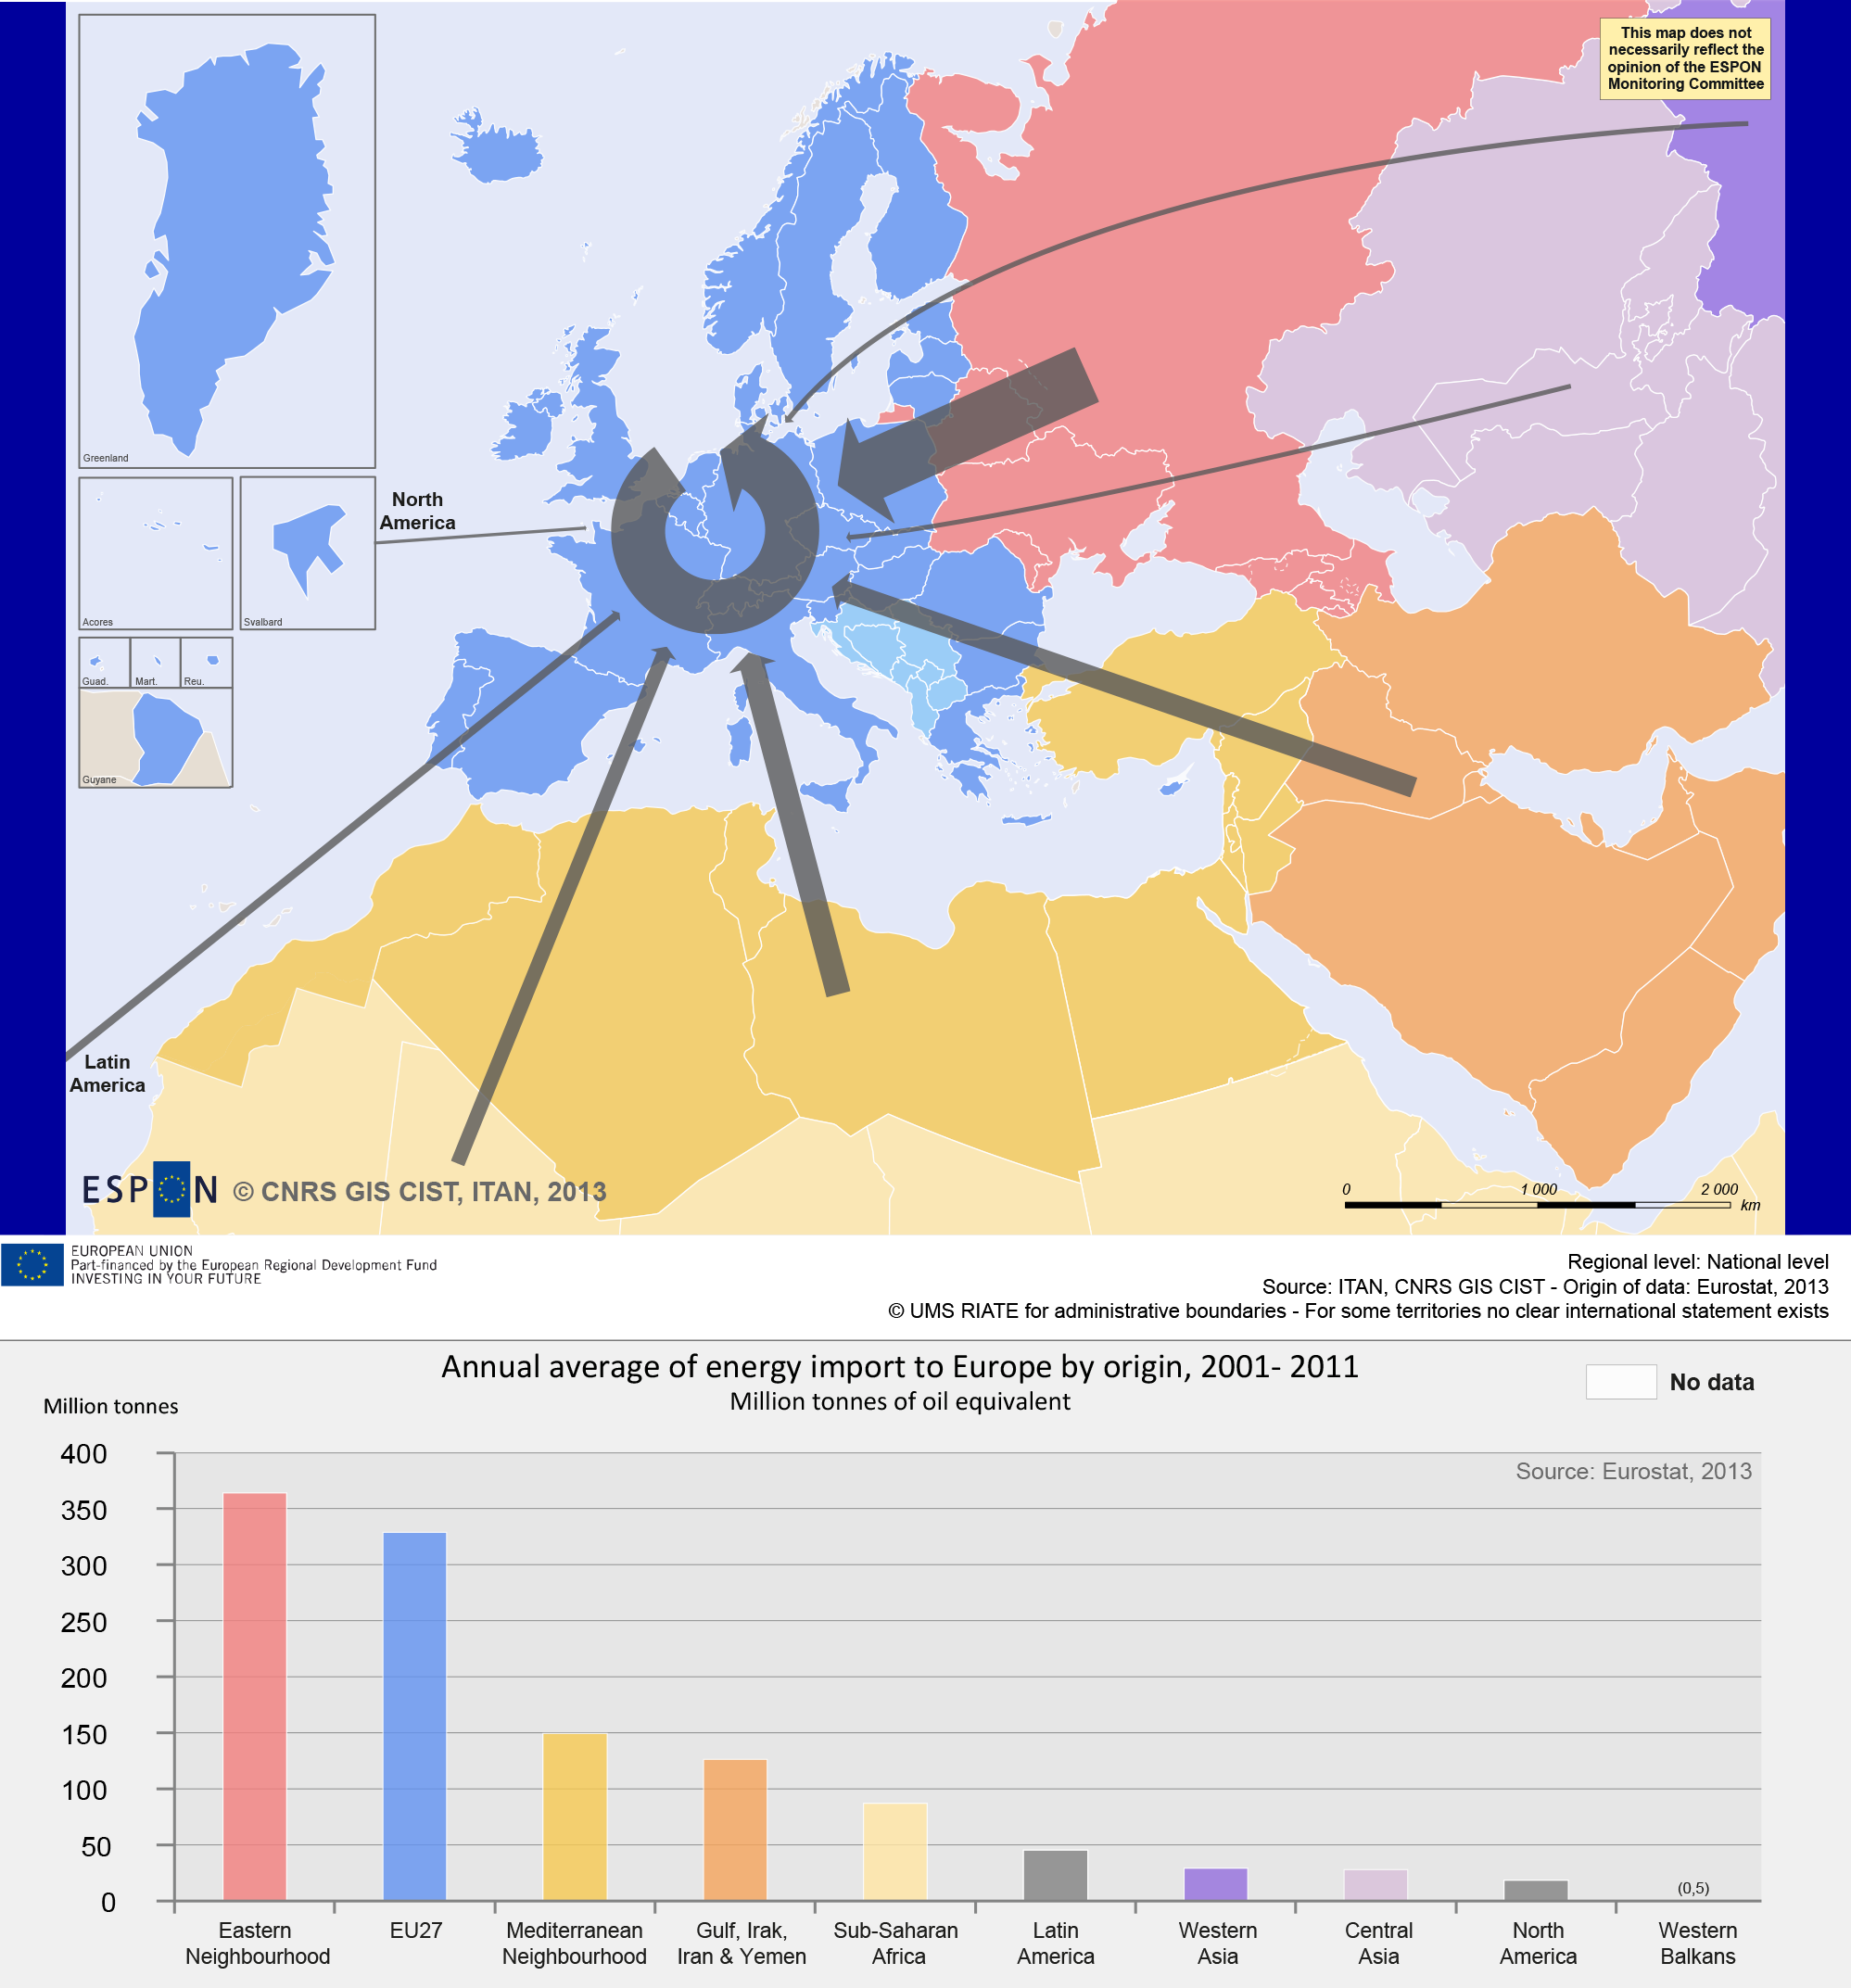 Map 2. Energy imported in Europe: the key role of the Neighbourhoods